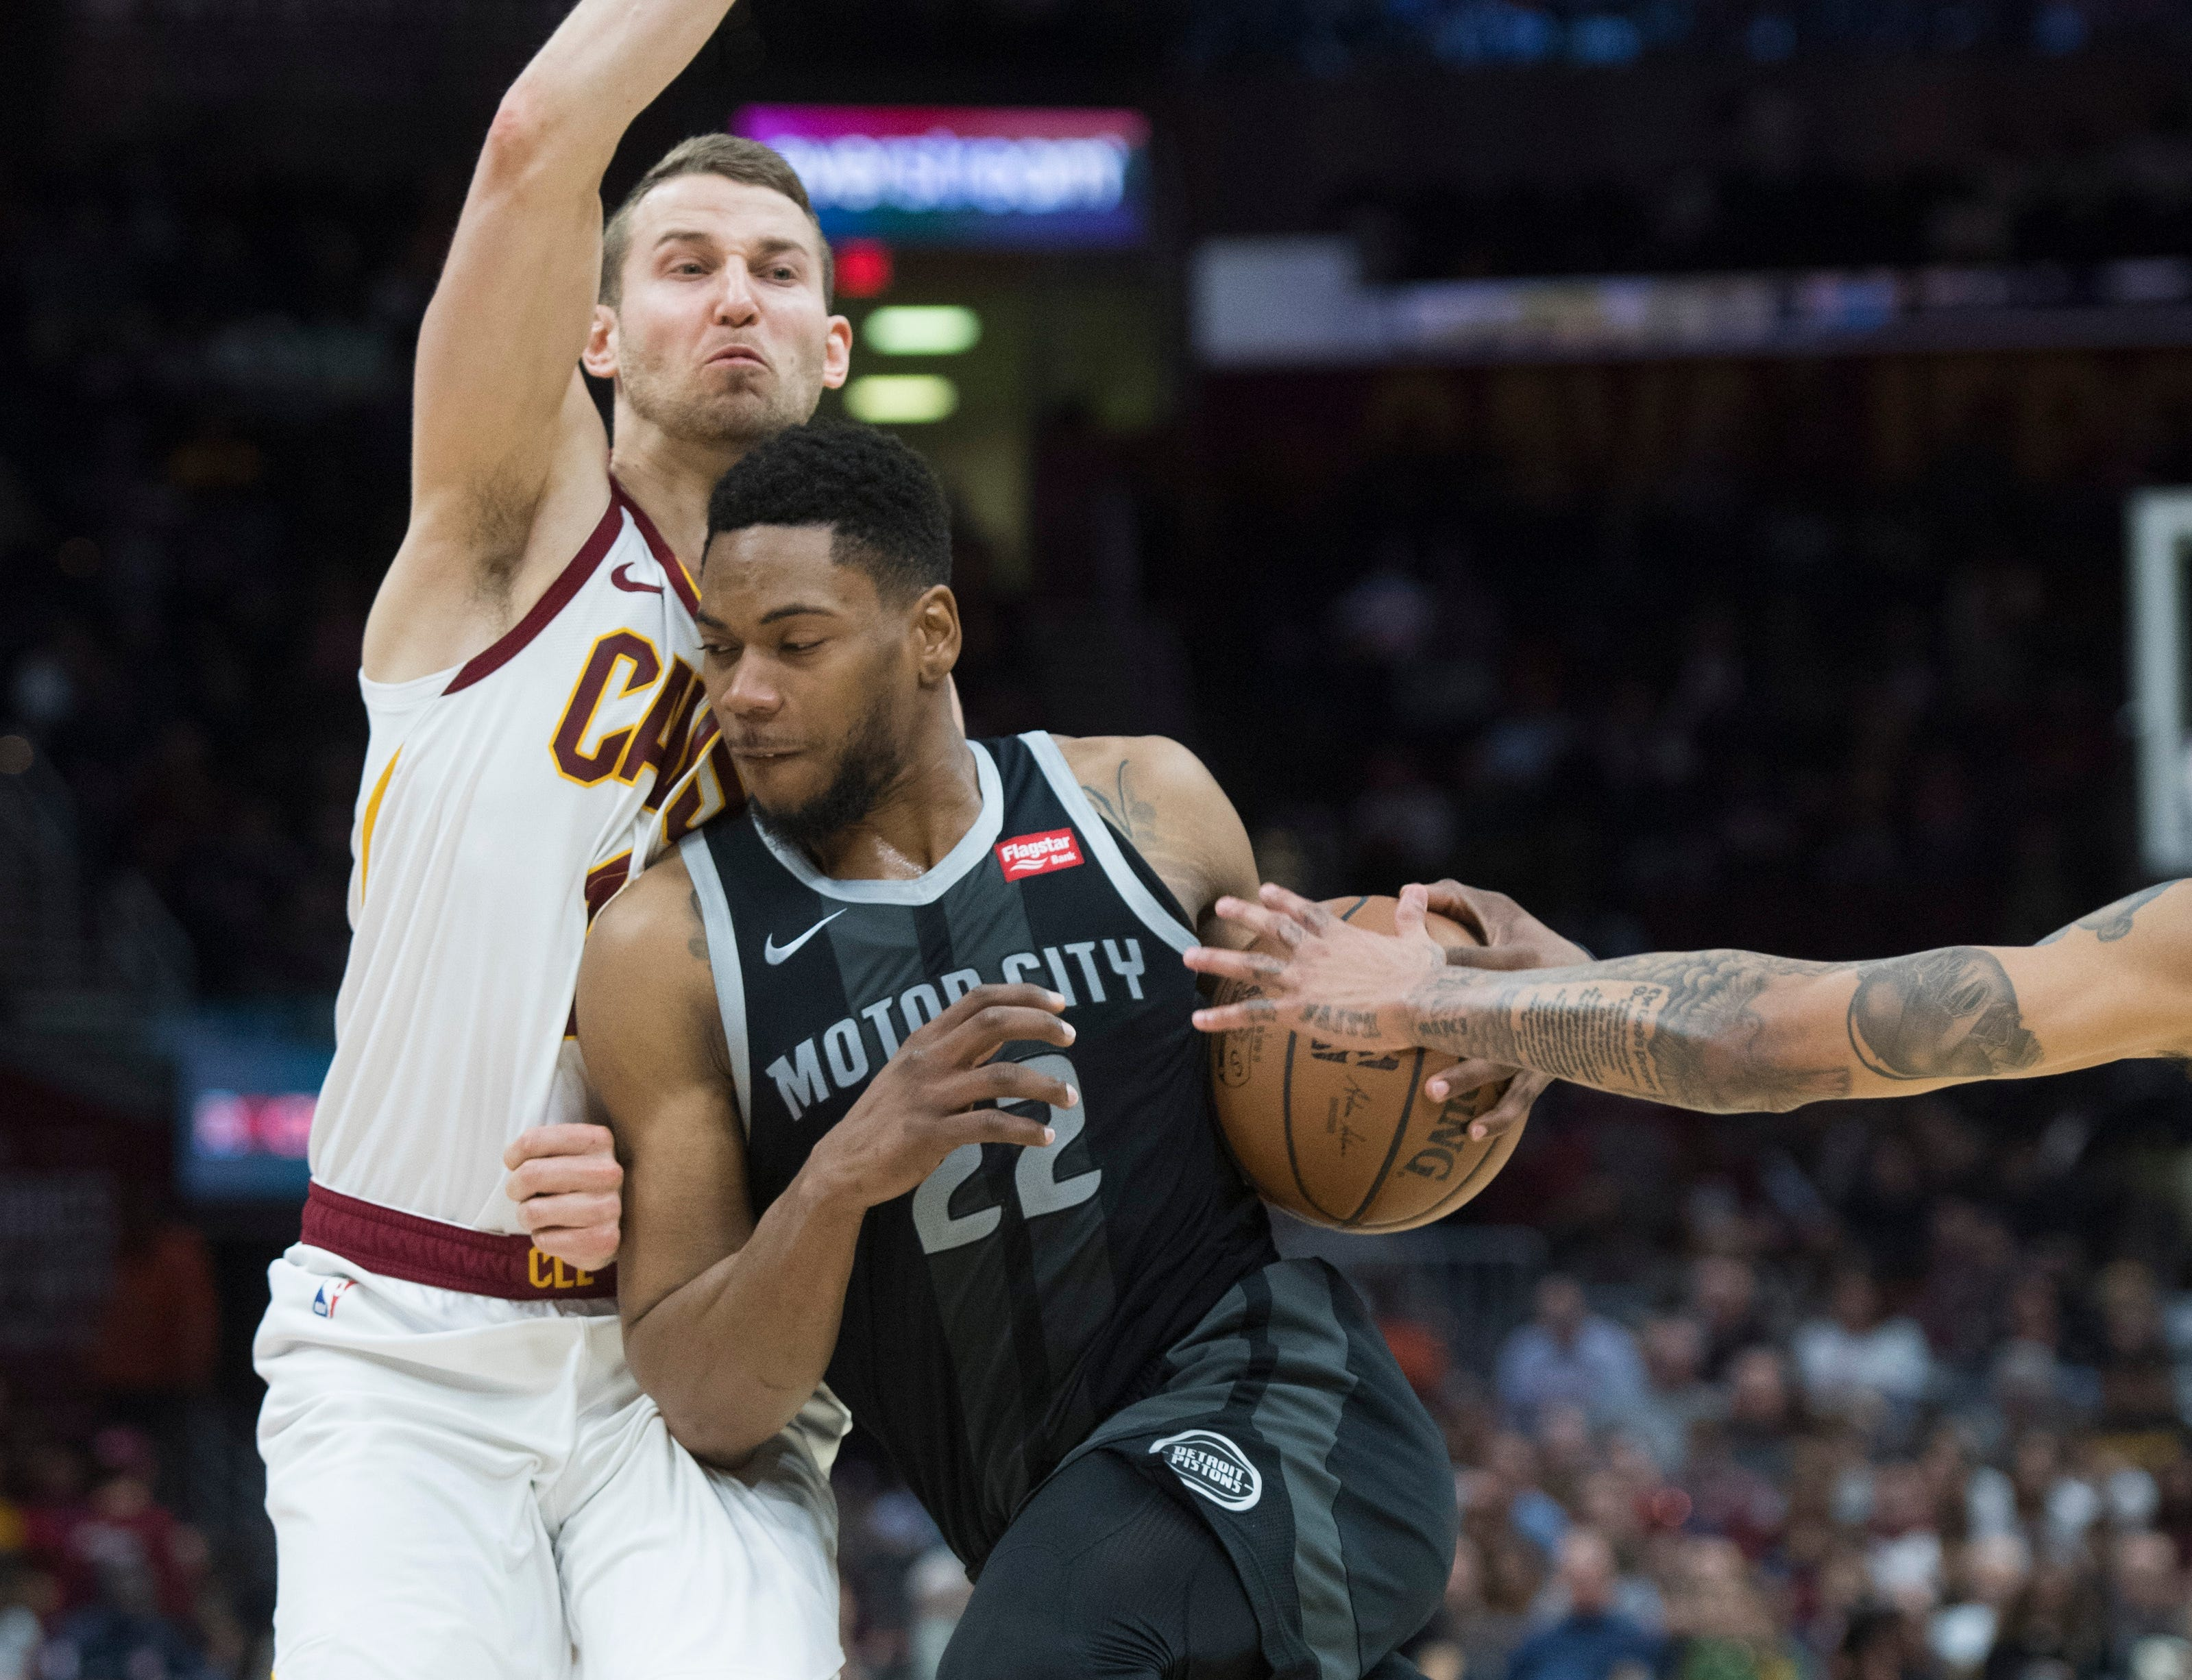 Detroit Pistons' guard Glenn Robinson III, right, drives to the basket against Cleveland Cavaliers' guard Nik Stauskas in the second half of an NBA basketball game.